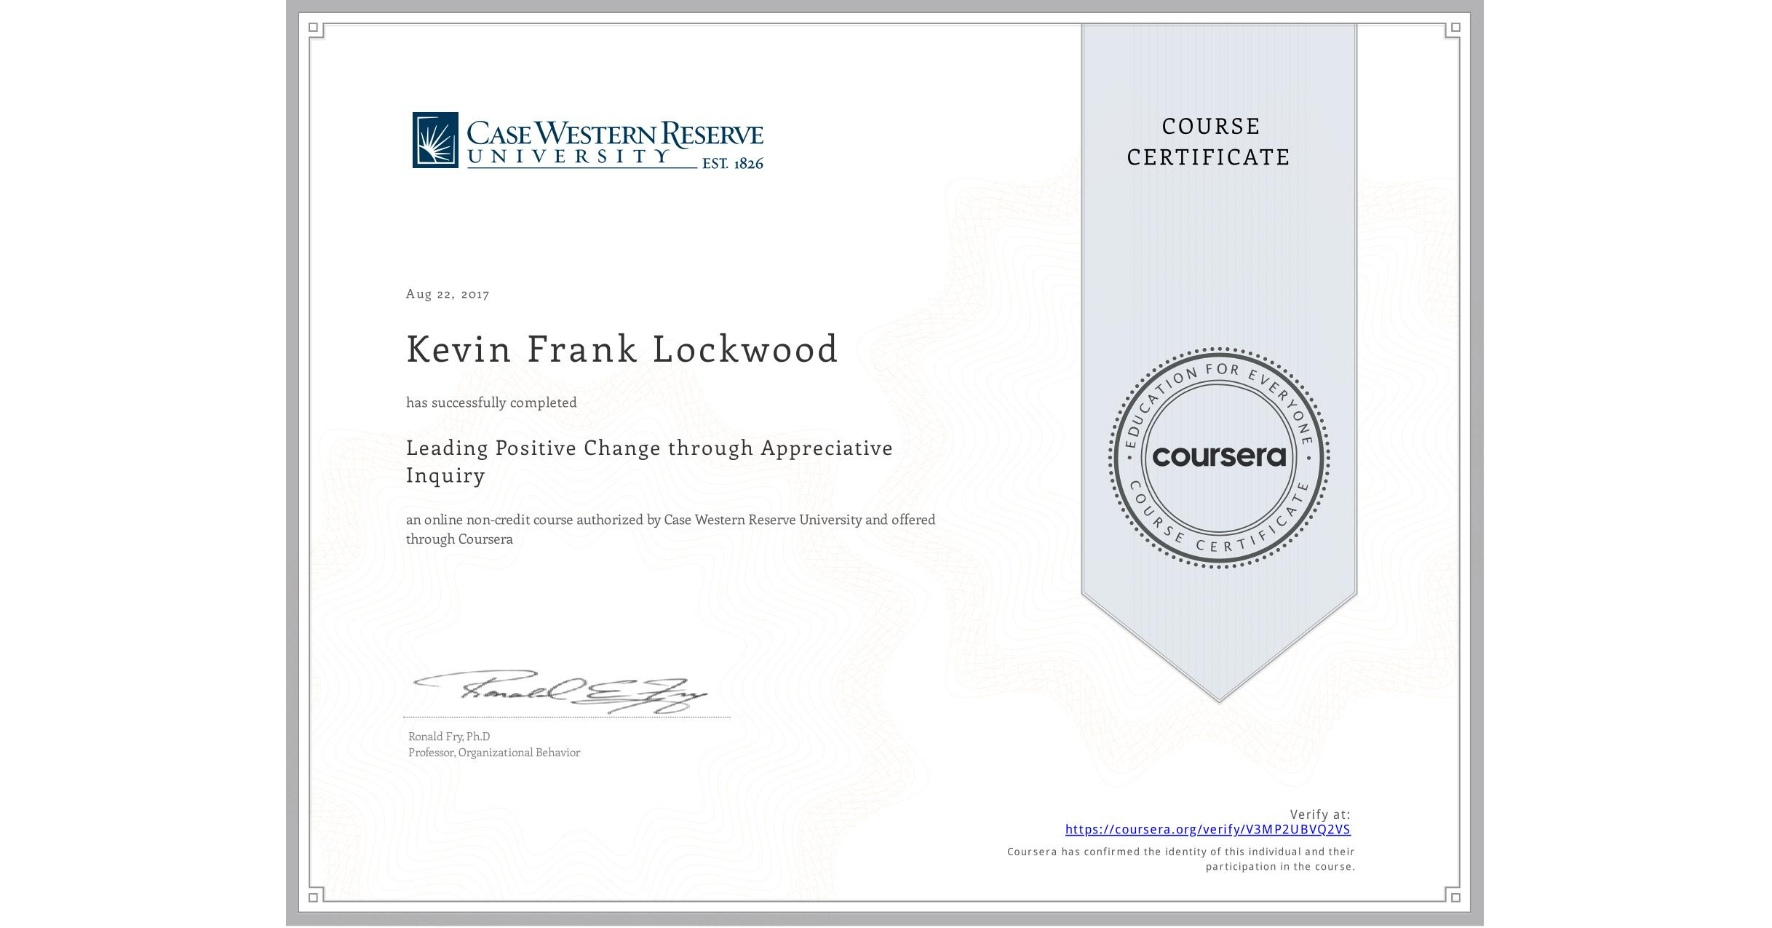 View certificate for Kevin Frank Lockwood, Leading Positive Change through Appreciative Inquiry, an online non-credit course authorized by Case Western Reserve University and offered through Coursera